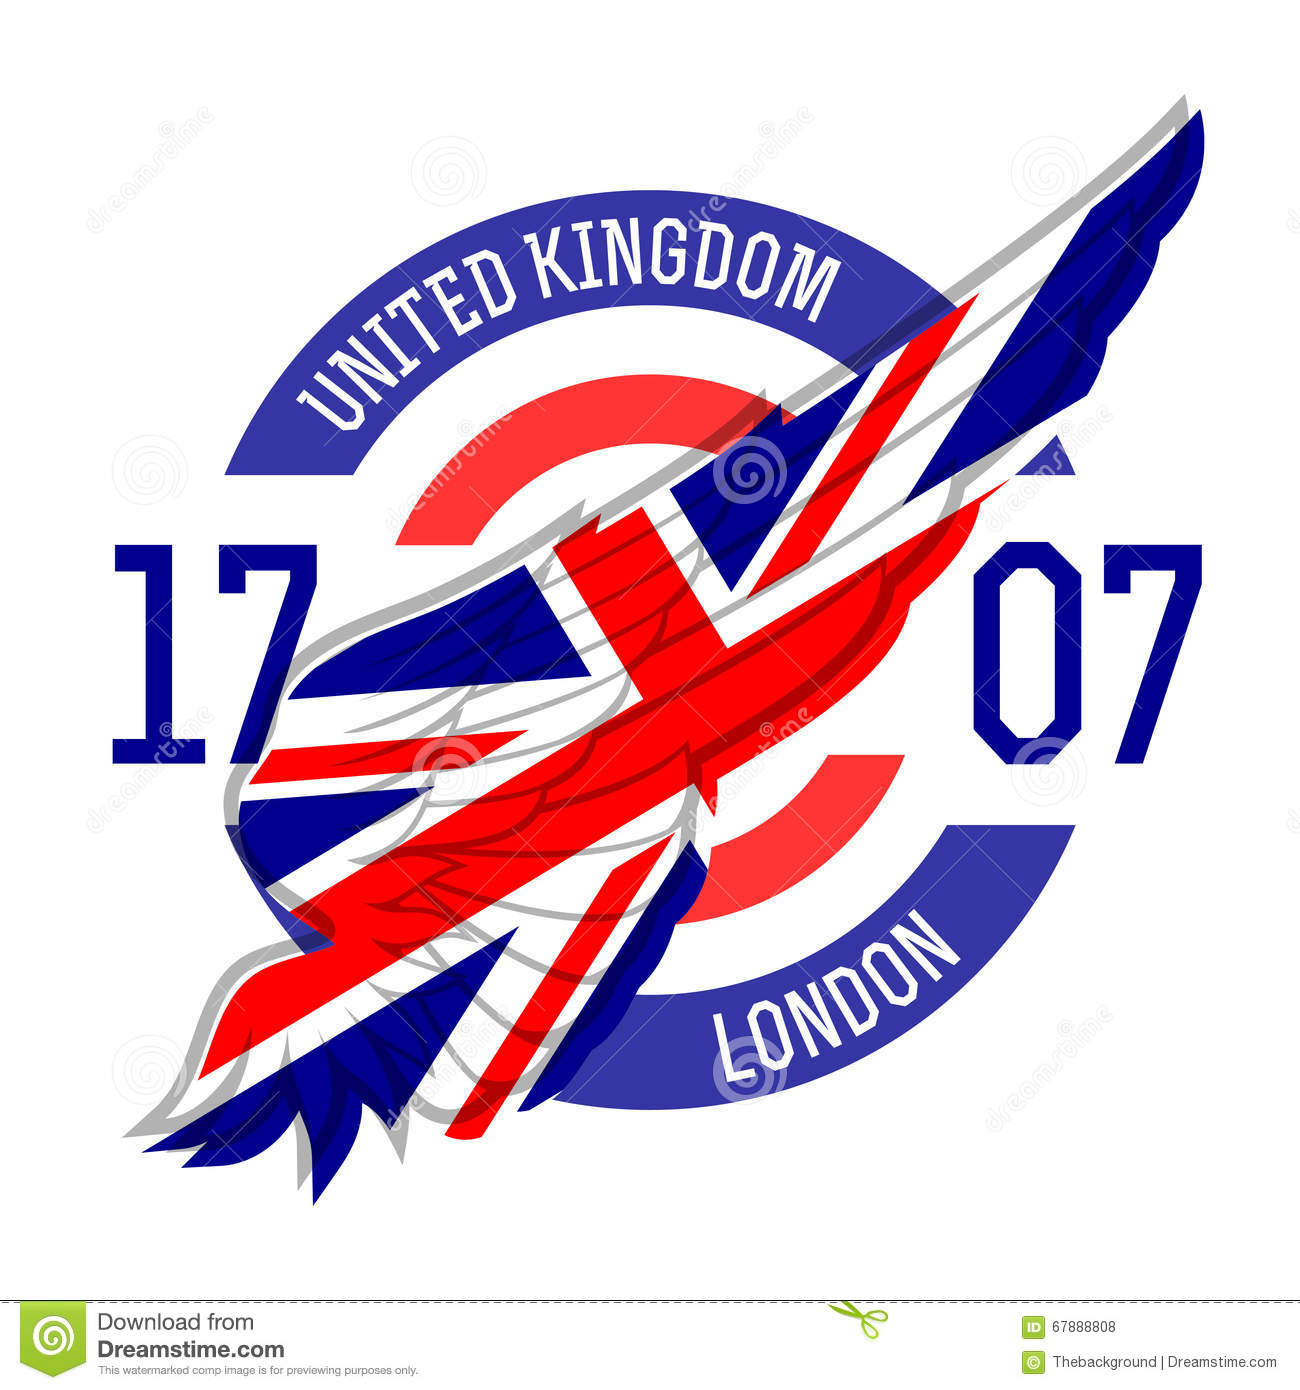 Shirt design london - London T Shirt Design Tee Templates With Wing And United Kingdo